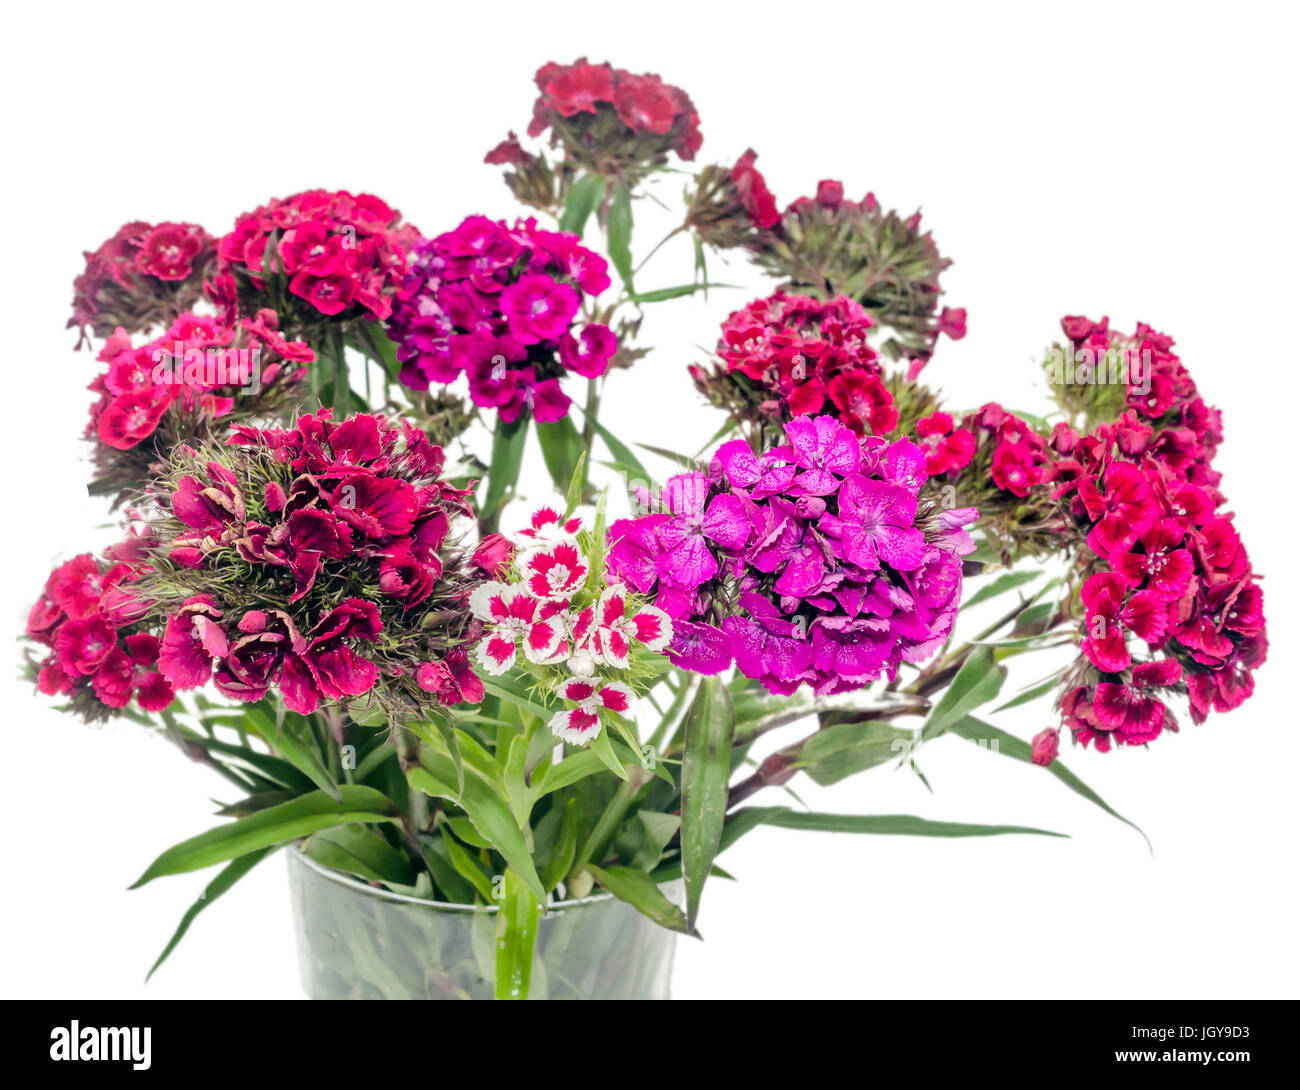 Pink, purple Dianthus flowers in a transparent vase - Stock Image